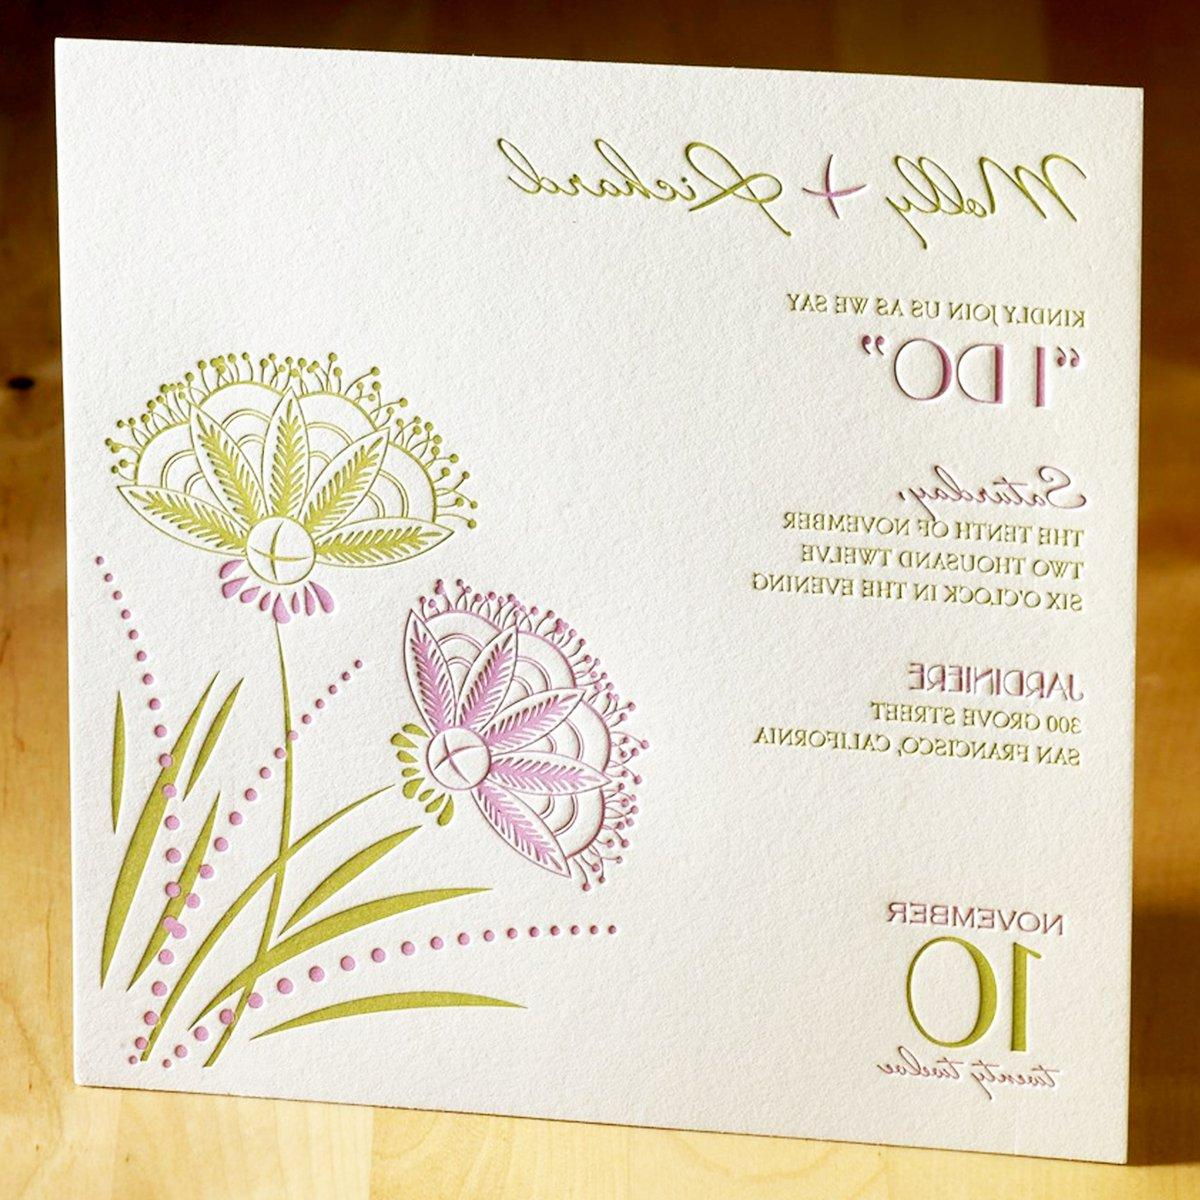 This beautiful letterpress wedding invitation features two breathtakingly